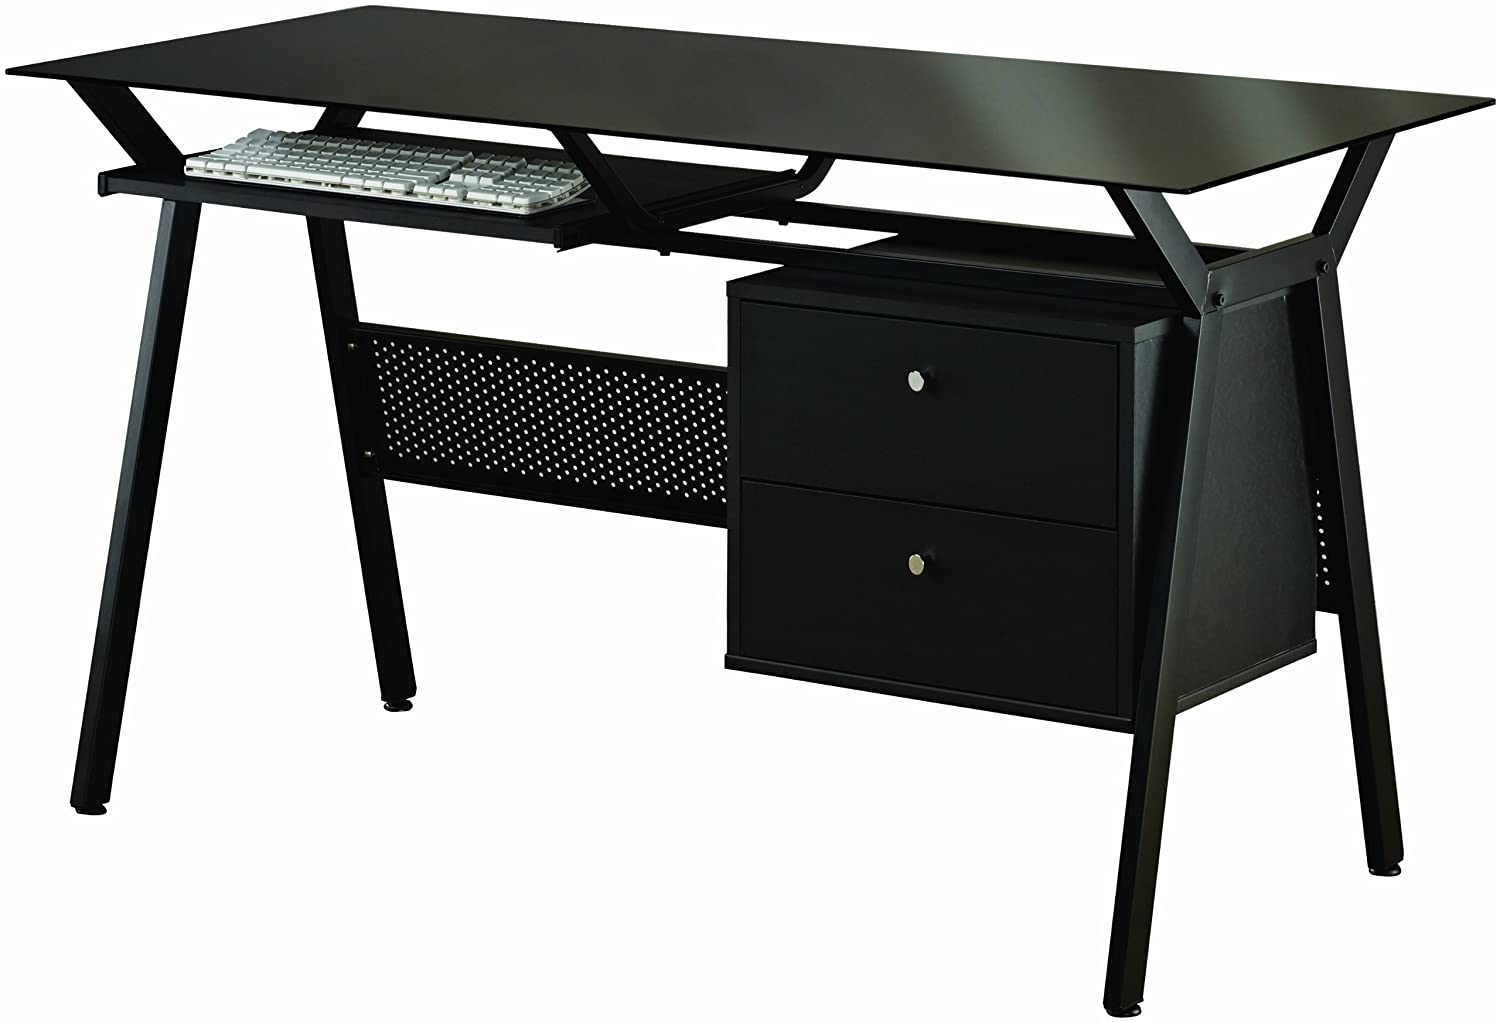 Black Metal Computer Desk 1500 x 1022